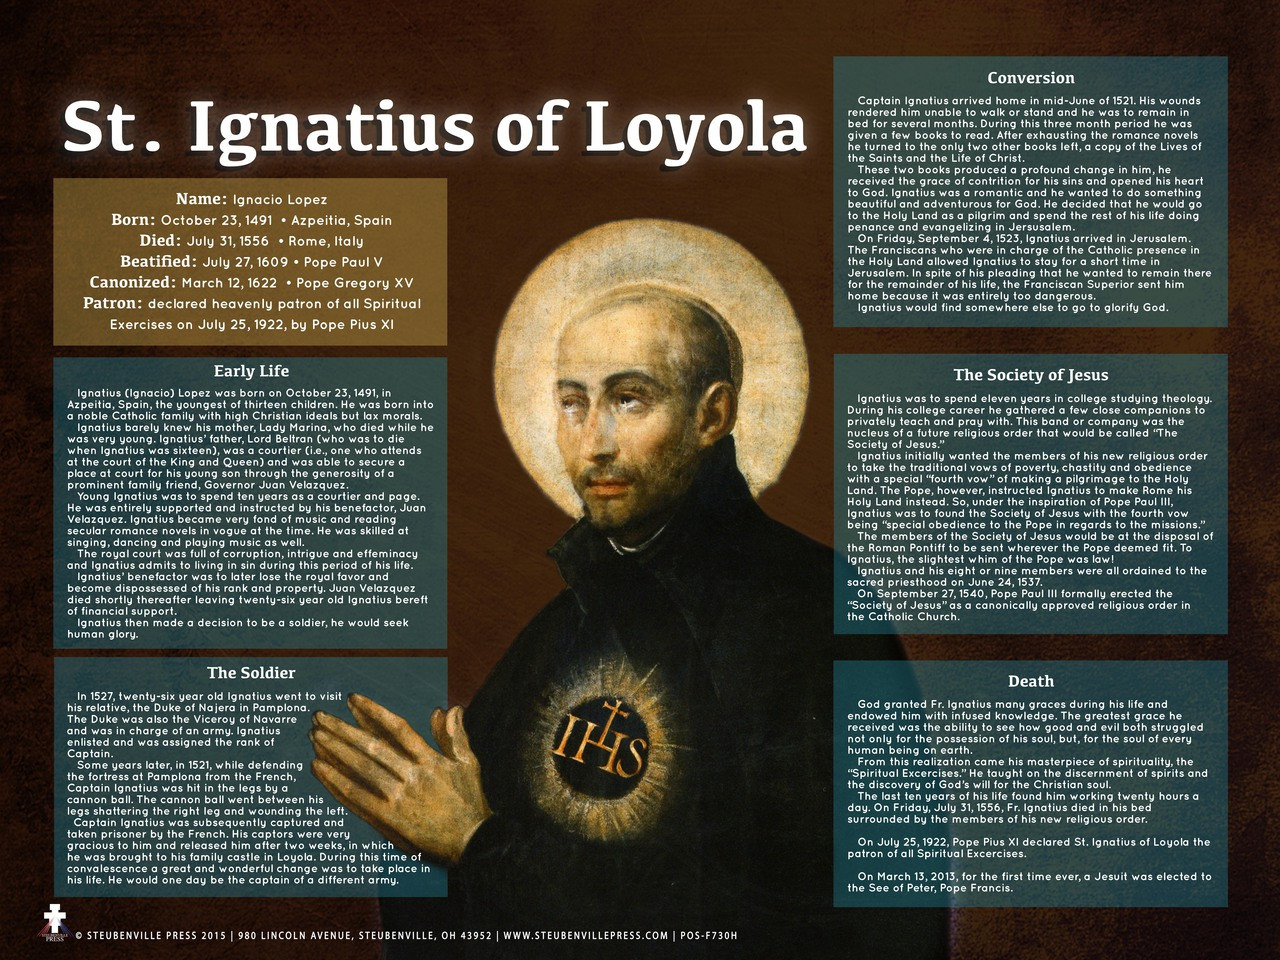 st ignatius of loyola On today's feast of st ignatius loyola, let us recall the trinitarian figure that  enraptured him, recorded in the reminiscences (section 28.